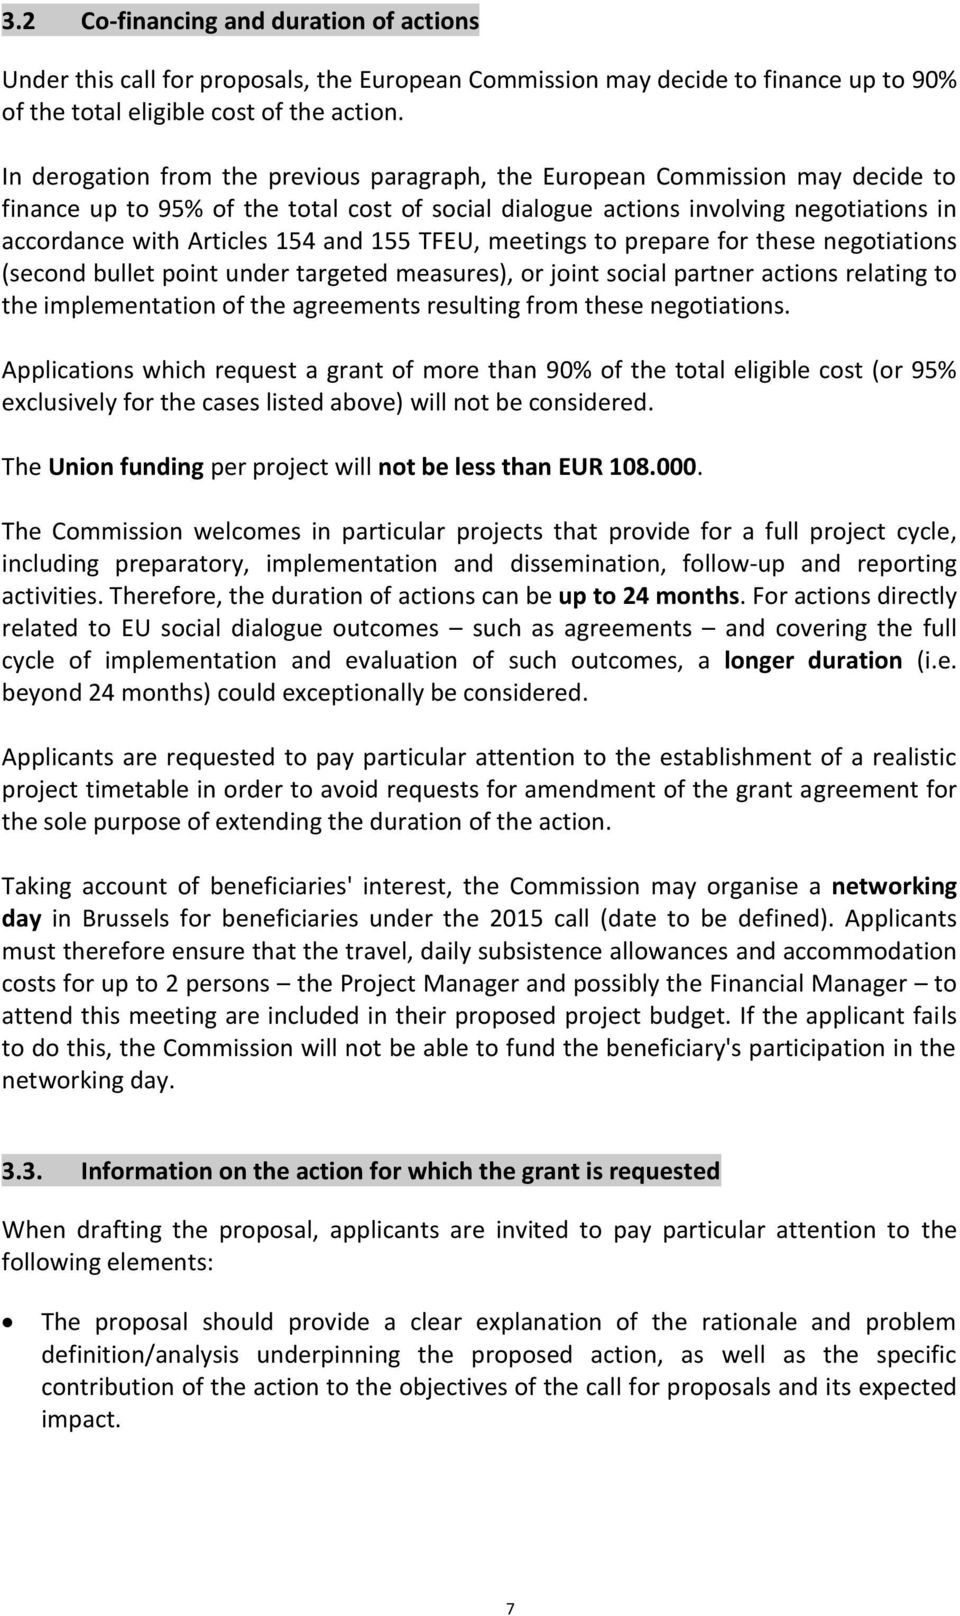 and 155 TFEU, meetings to prepare for these negotiations (second bullet point under targeted measures), or joint social partner actions relating to the implementation of the agreements resulting from